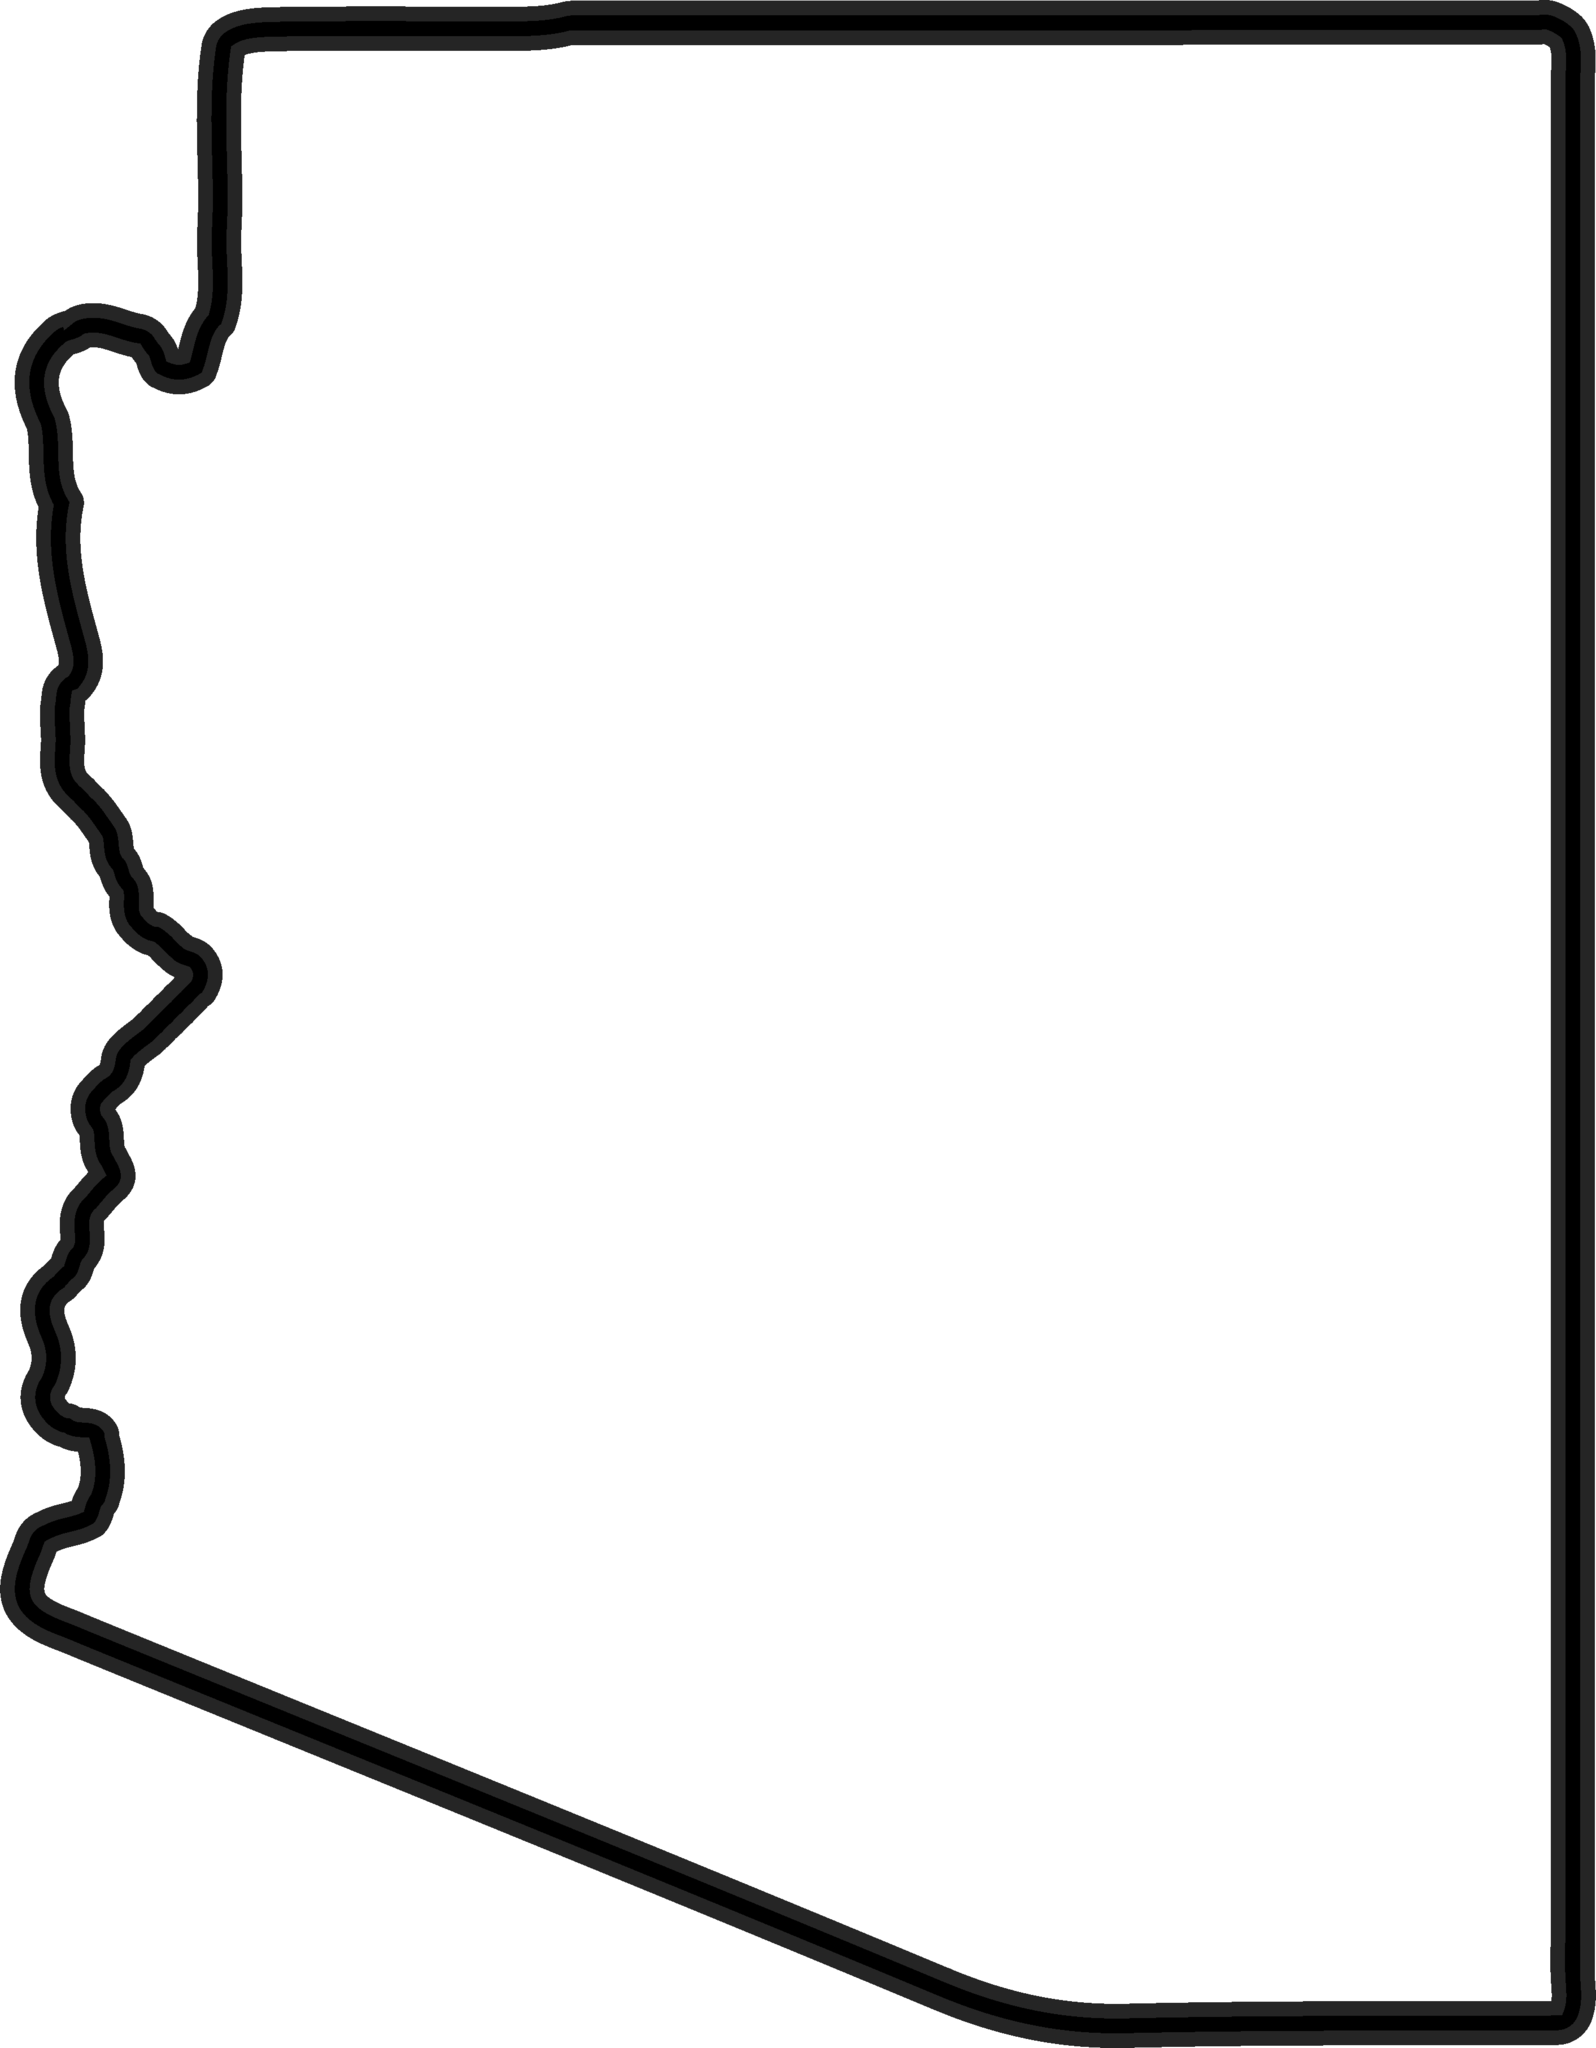 outline of the state of arizona